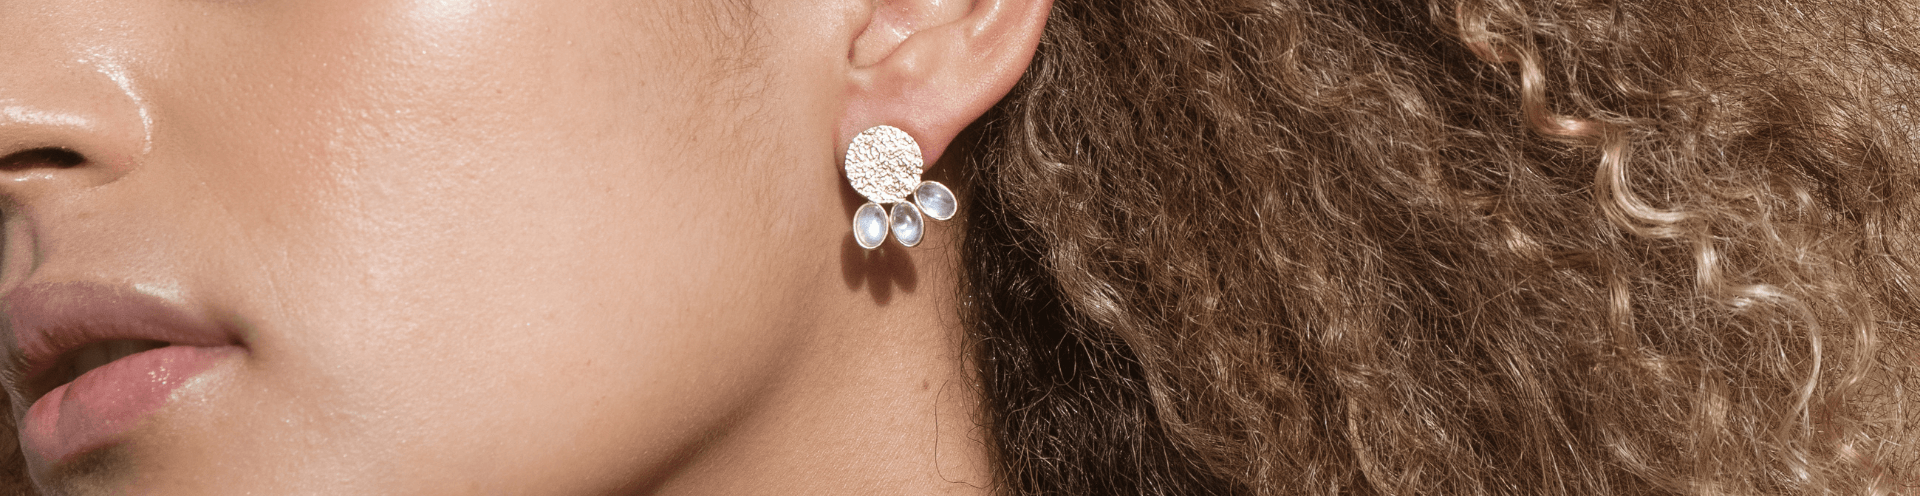 Semi-precious stone earrings | Colored stone earrings | MURONA